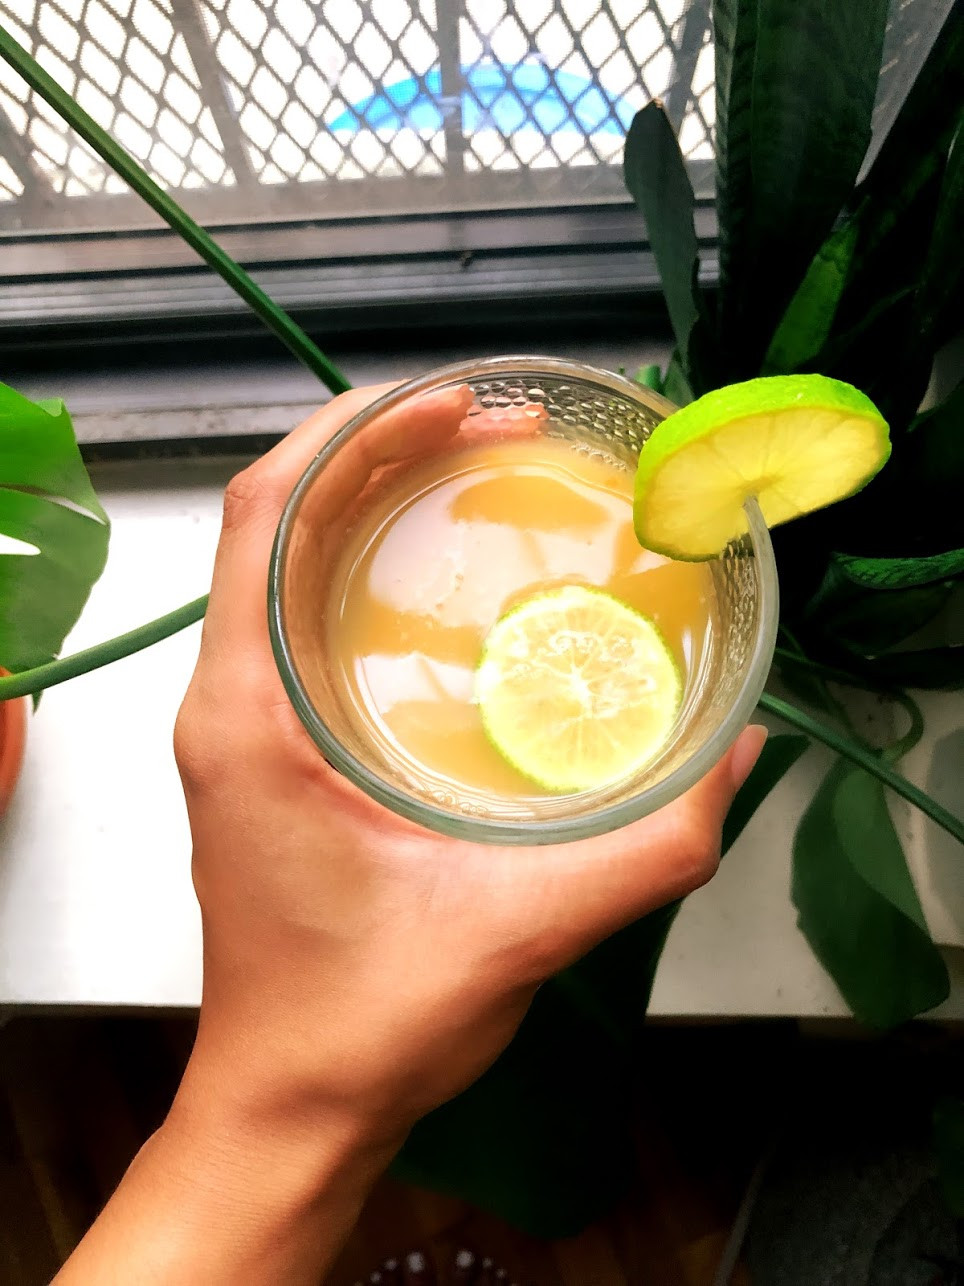 Enjoy an ice cold glass of sweet and spicy ginger beer, garnished with slices of lime.